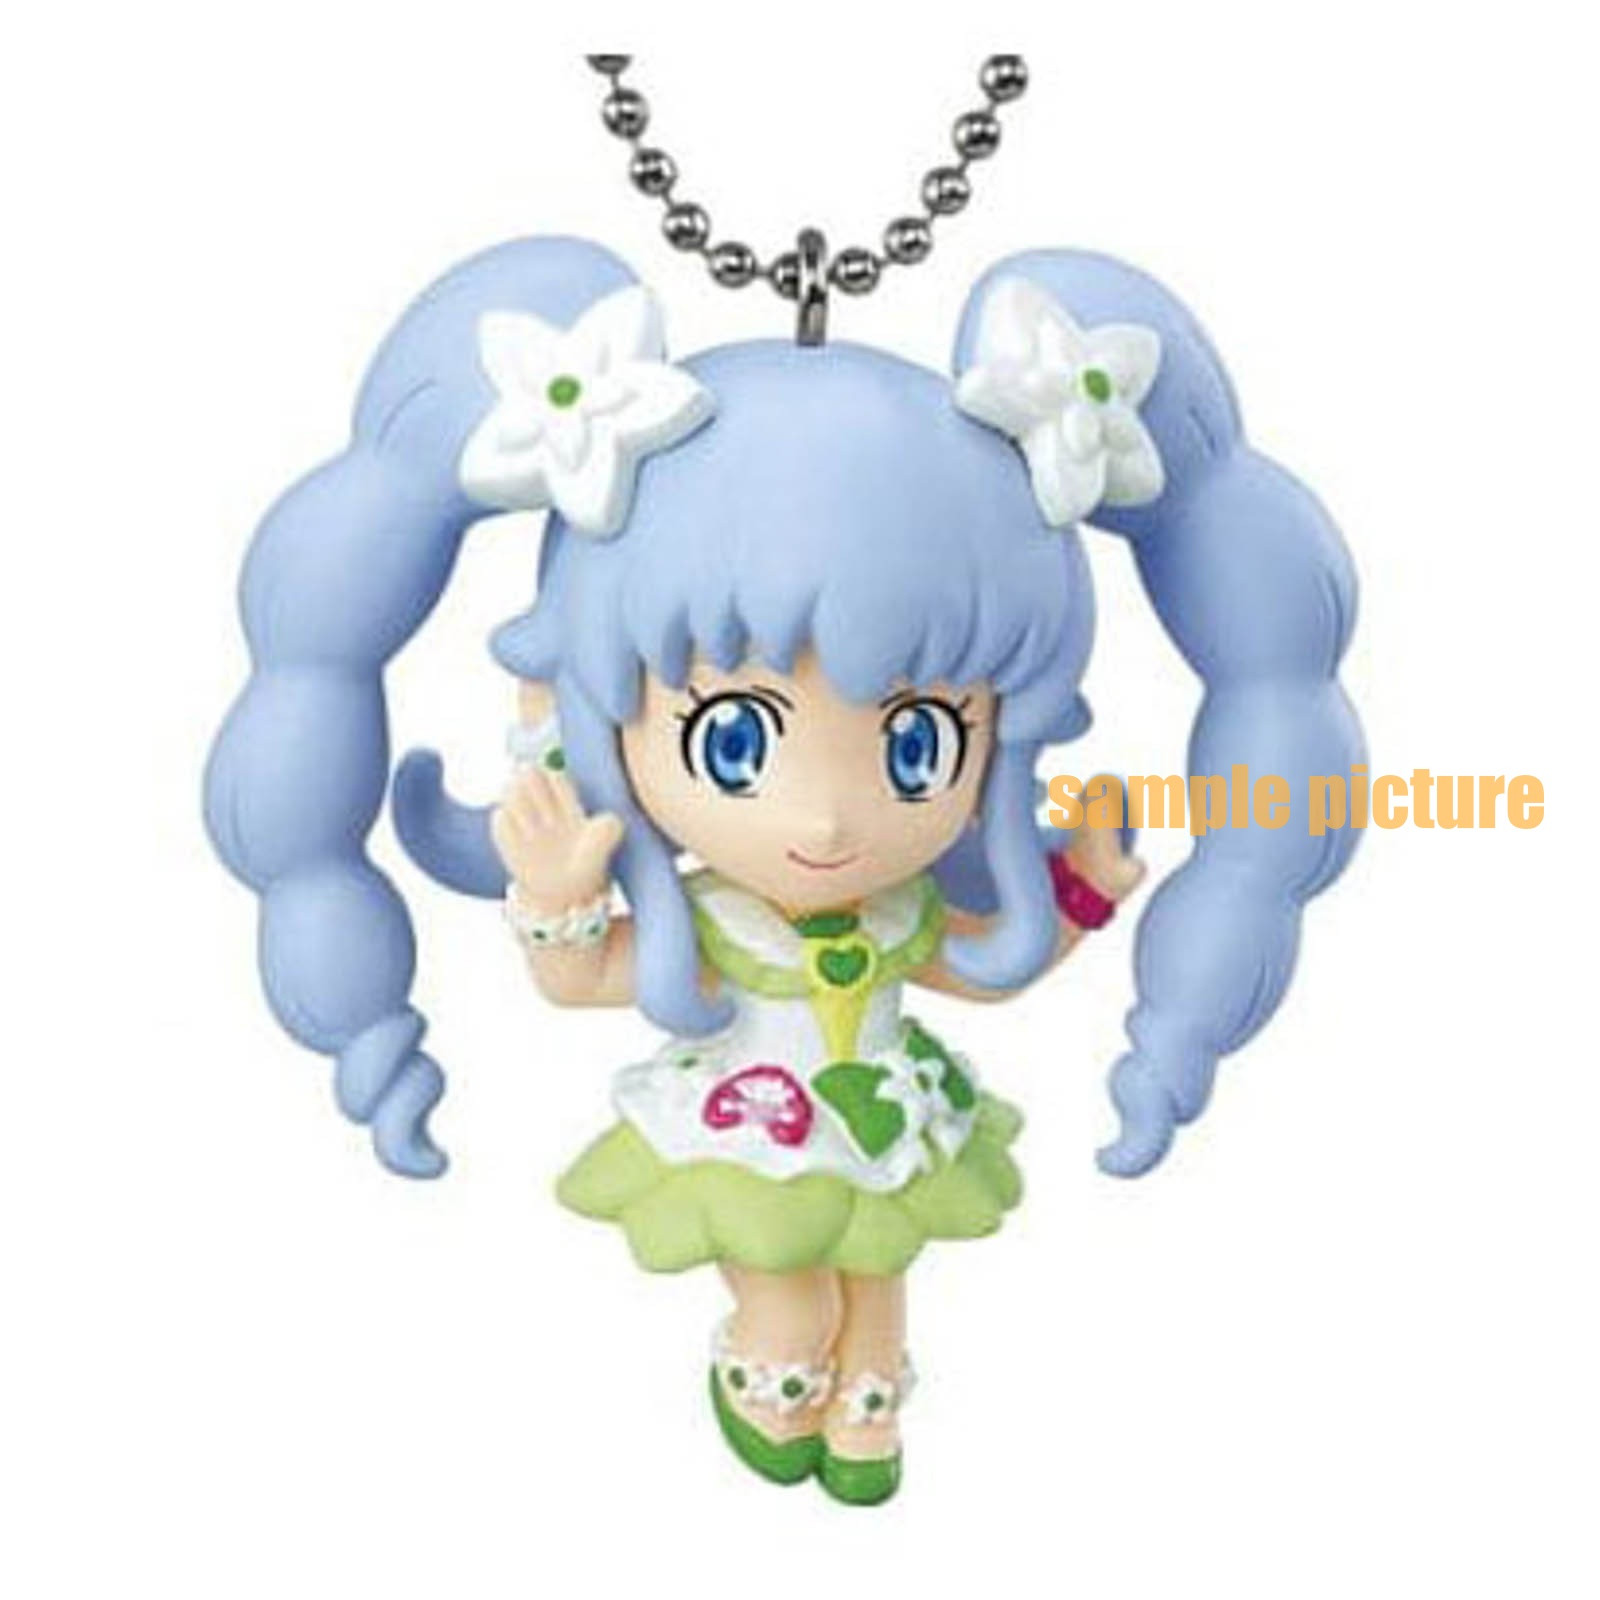 HappinessCharge PreCure! Cure Princess (Macadamia hula ver.) Mascot Figure Ball Keychain 2 JAPAN ANIME